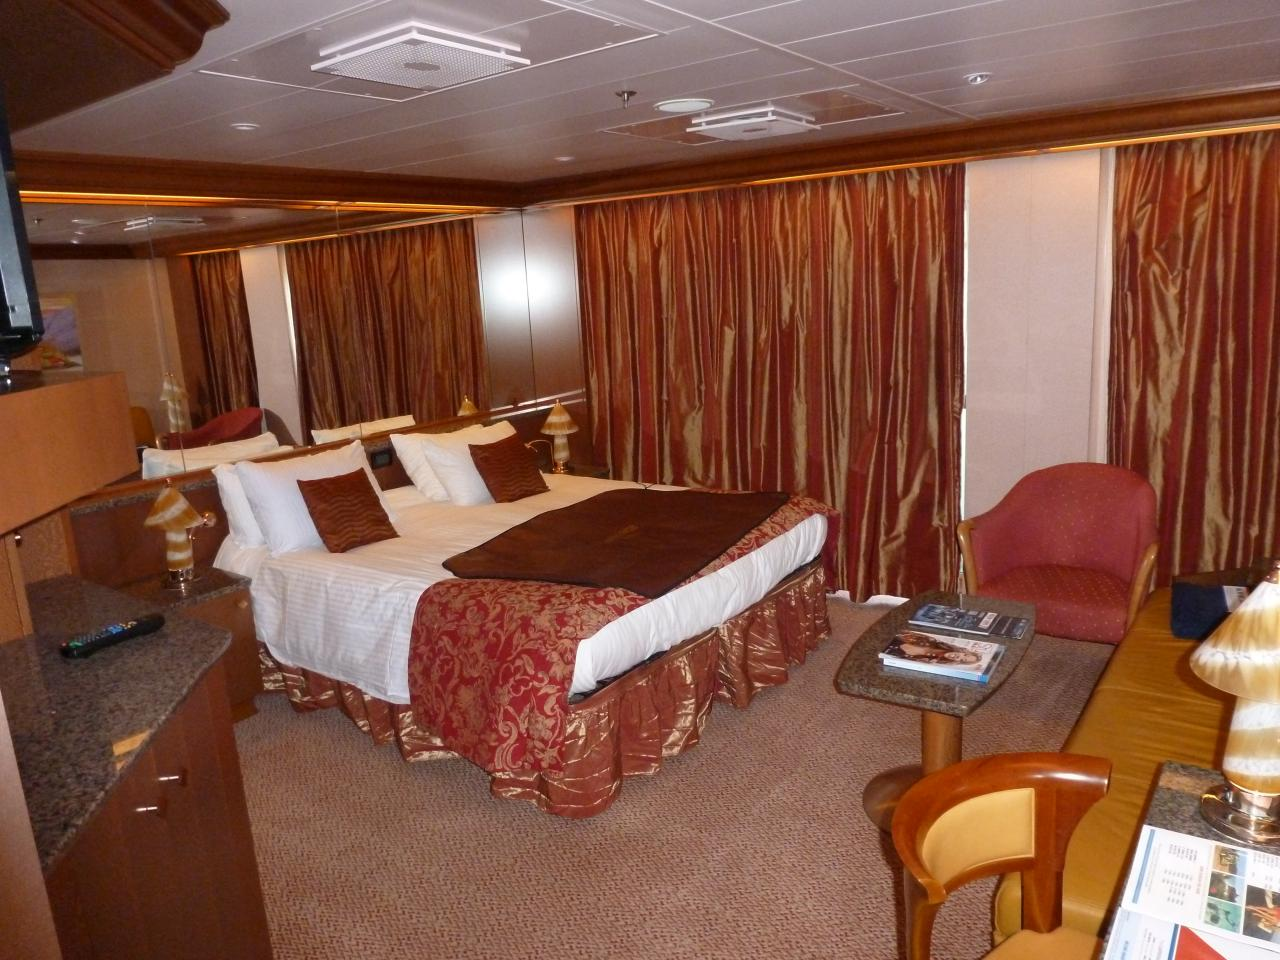 Carnival dream cruise review for cabin 7370 for Dream cabins